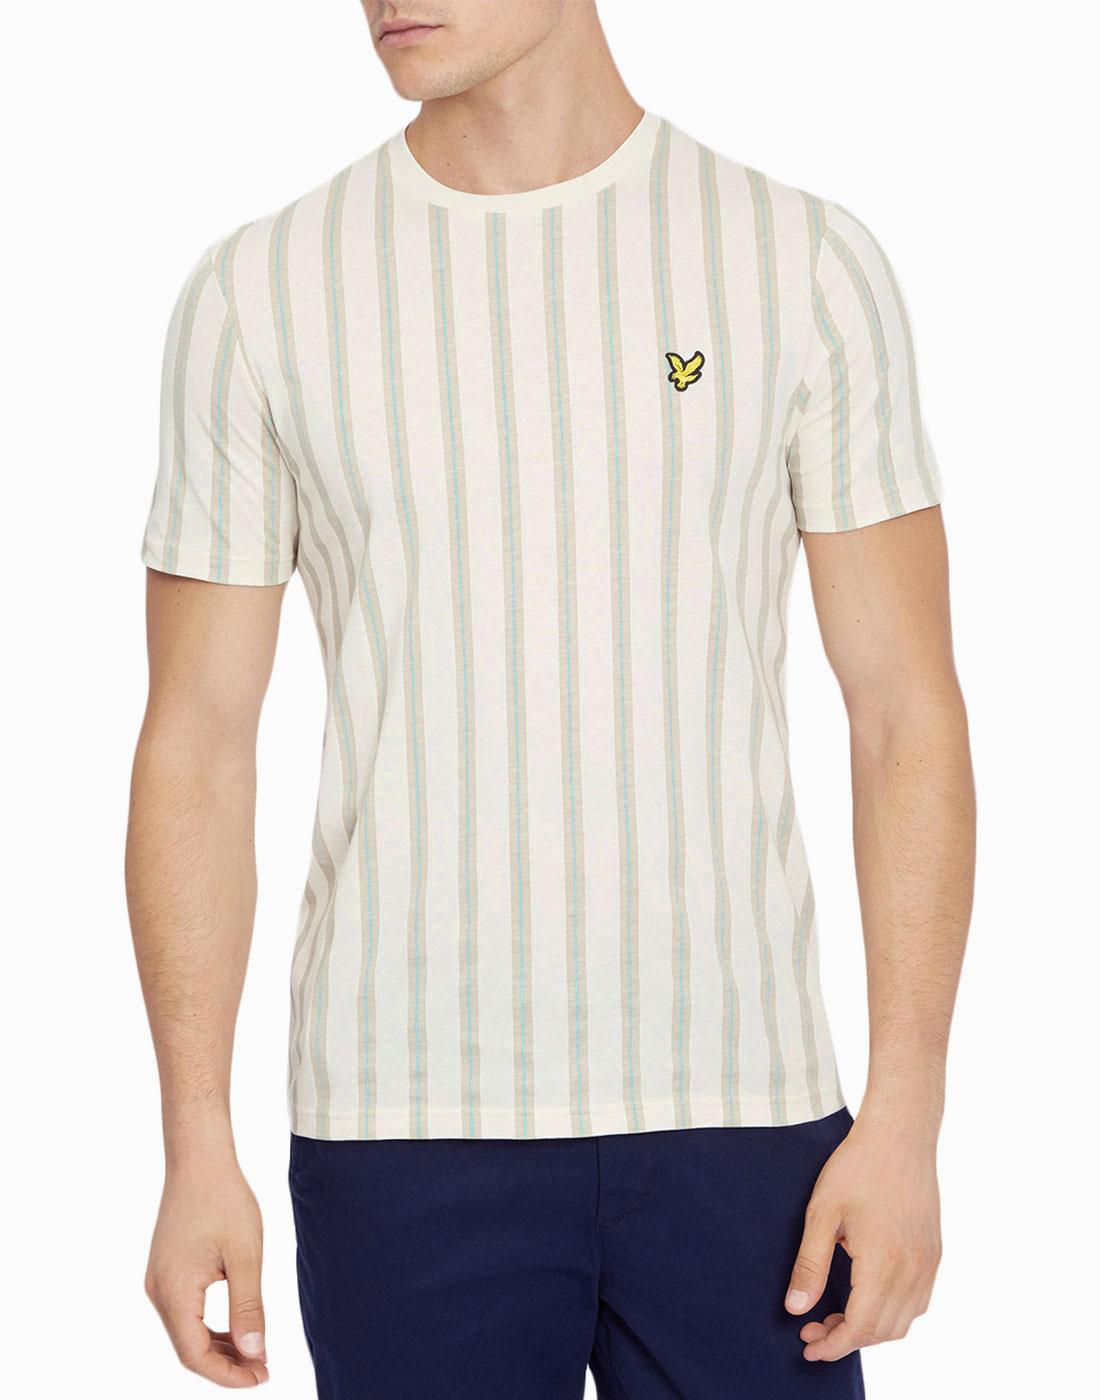 LYLE & SCOTT Retro Mod Deckchair Stripe T-Shirt SW